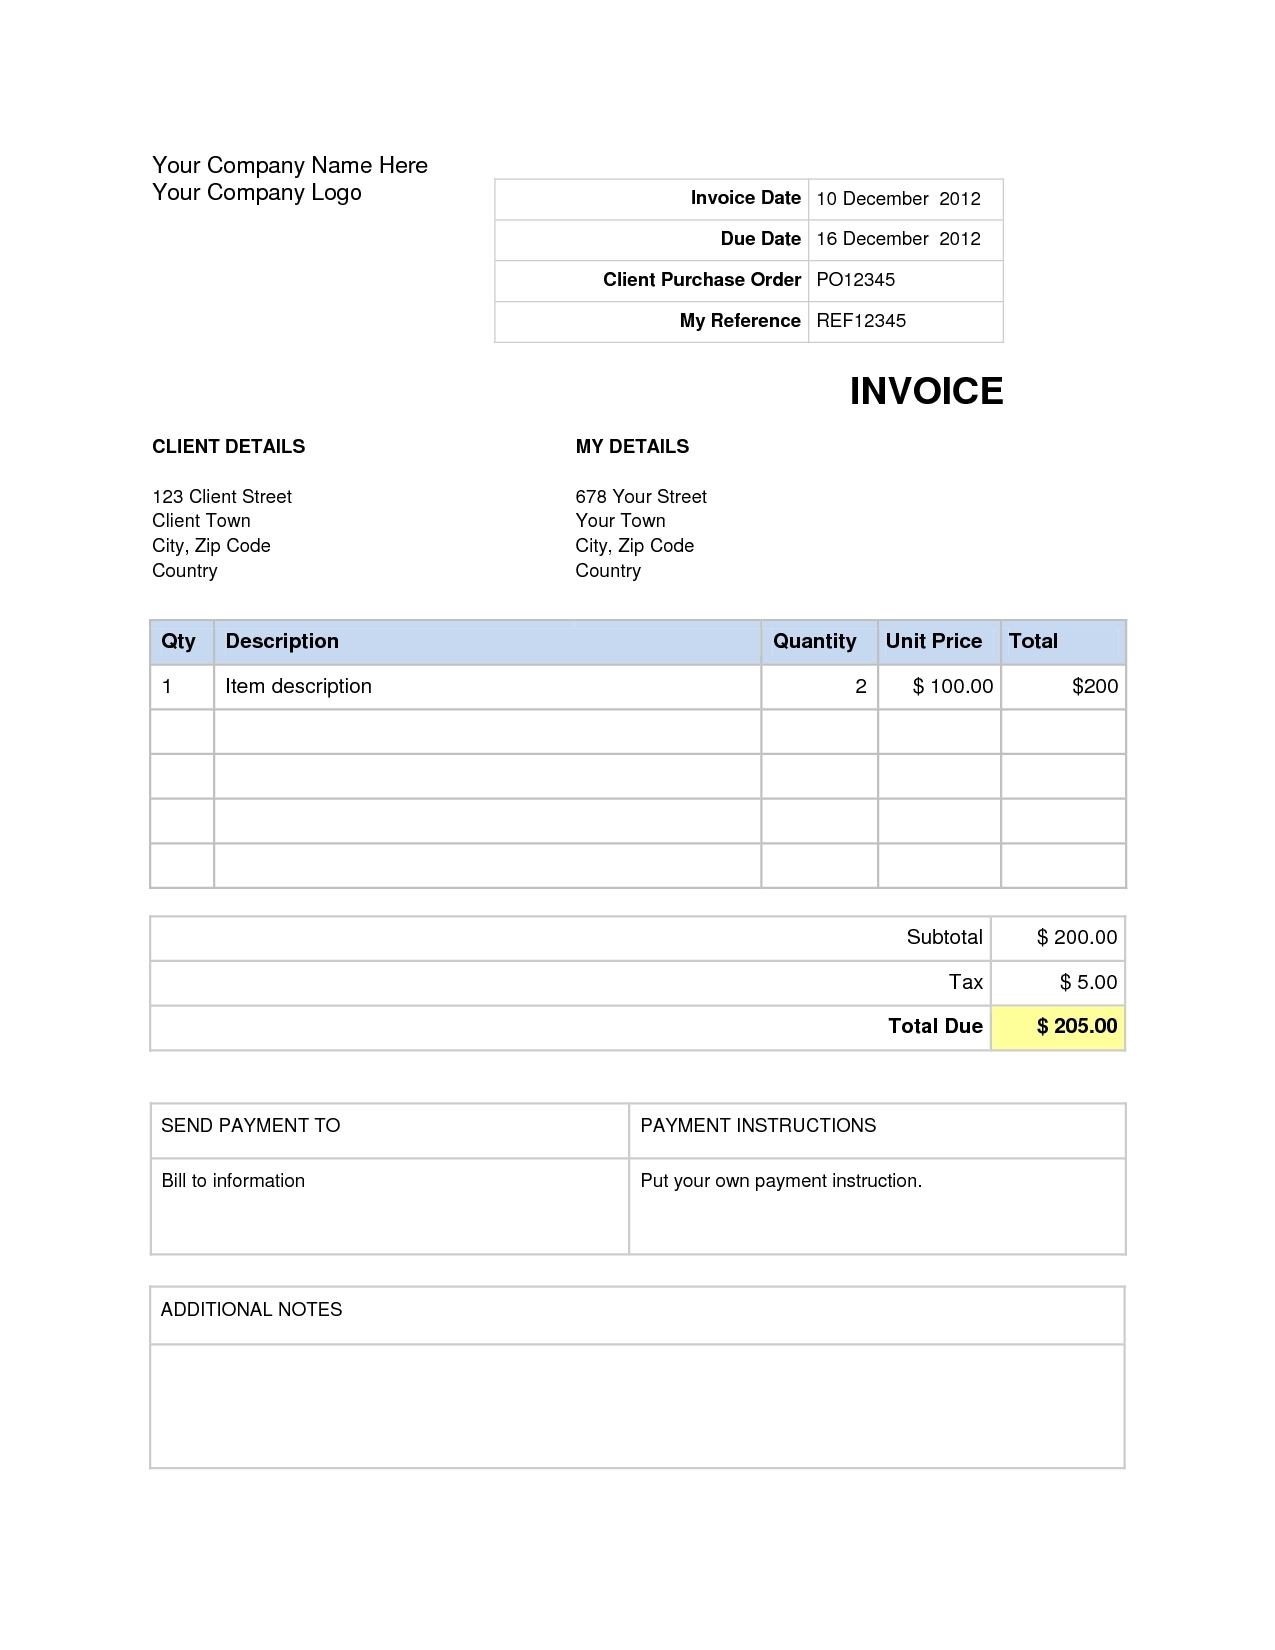 sample invoice in word word document invoice template invoice template free 2016 1275 X 1650